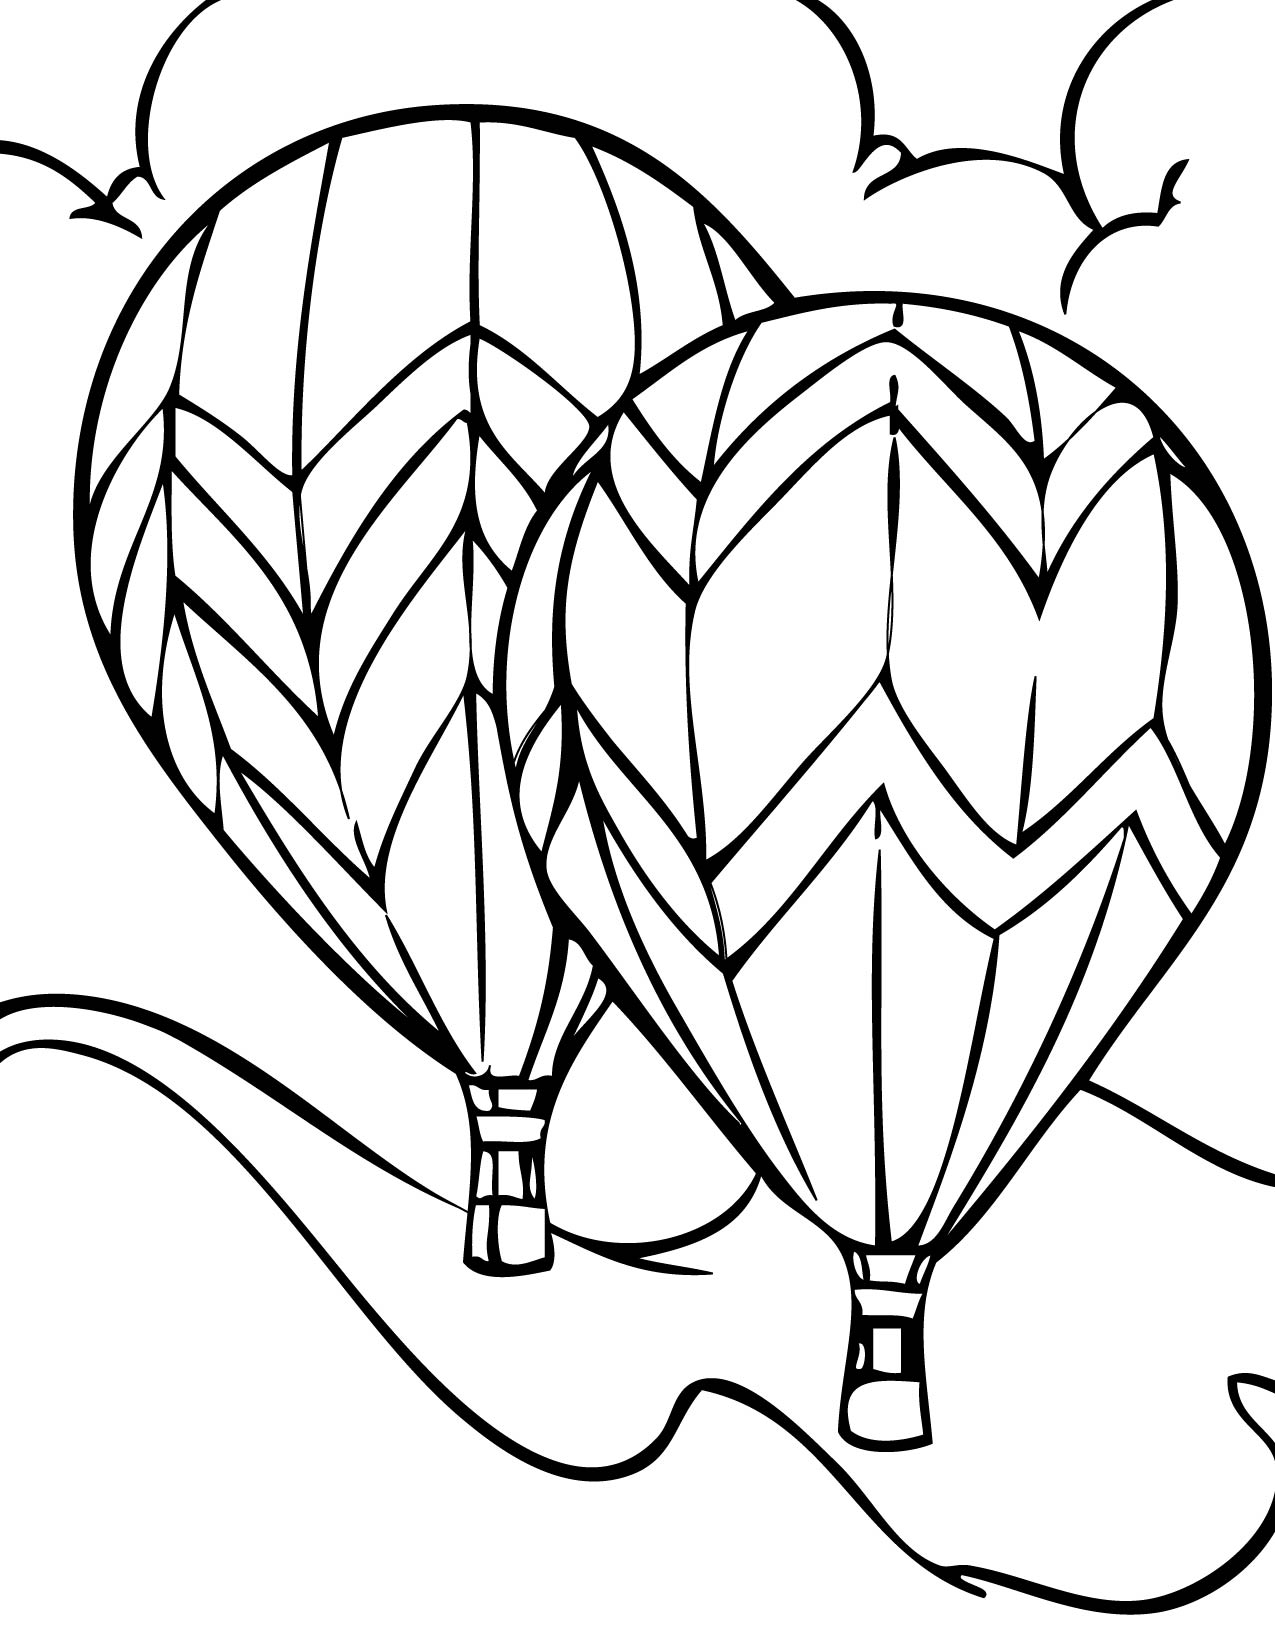 free coloring pages downloads - photo#29